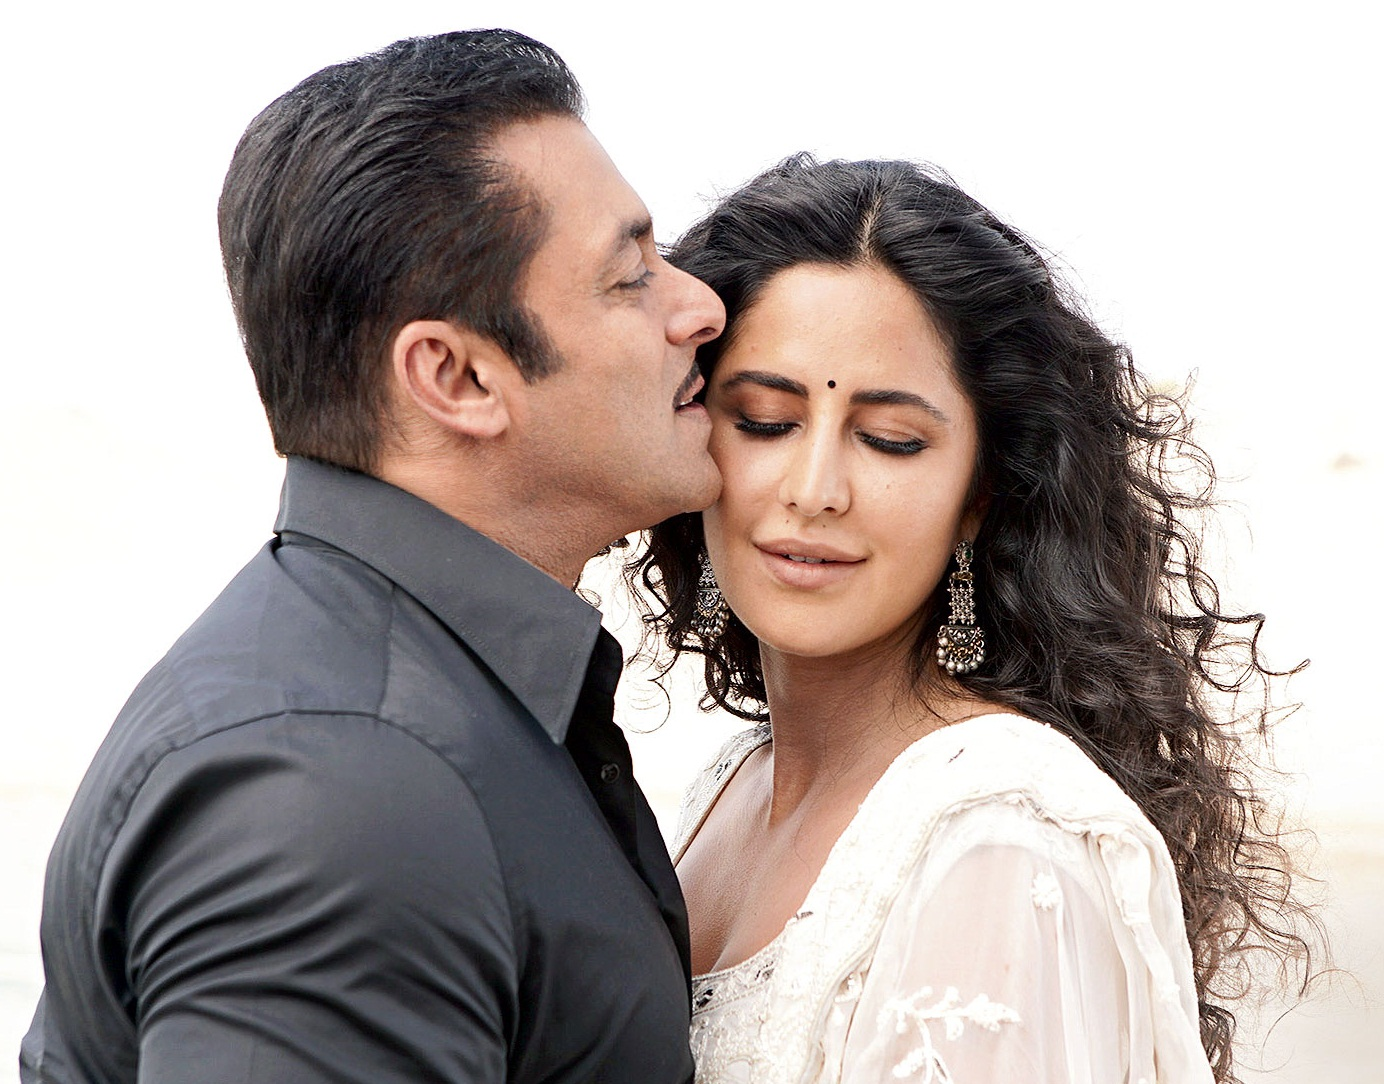 Salman Khan and Katrina Kaif in 'Bharat'